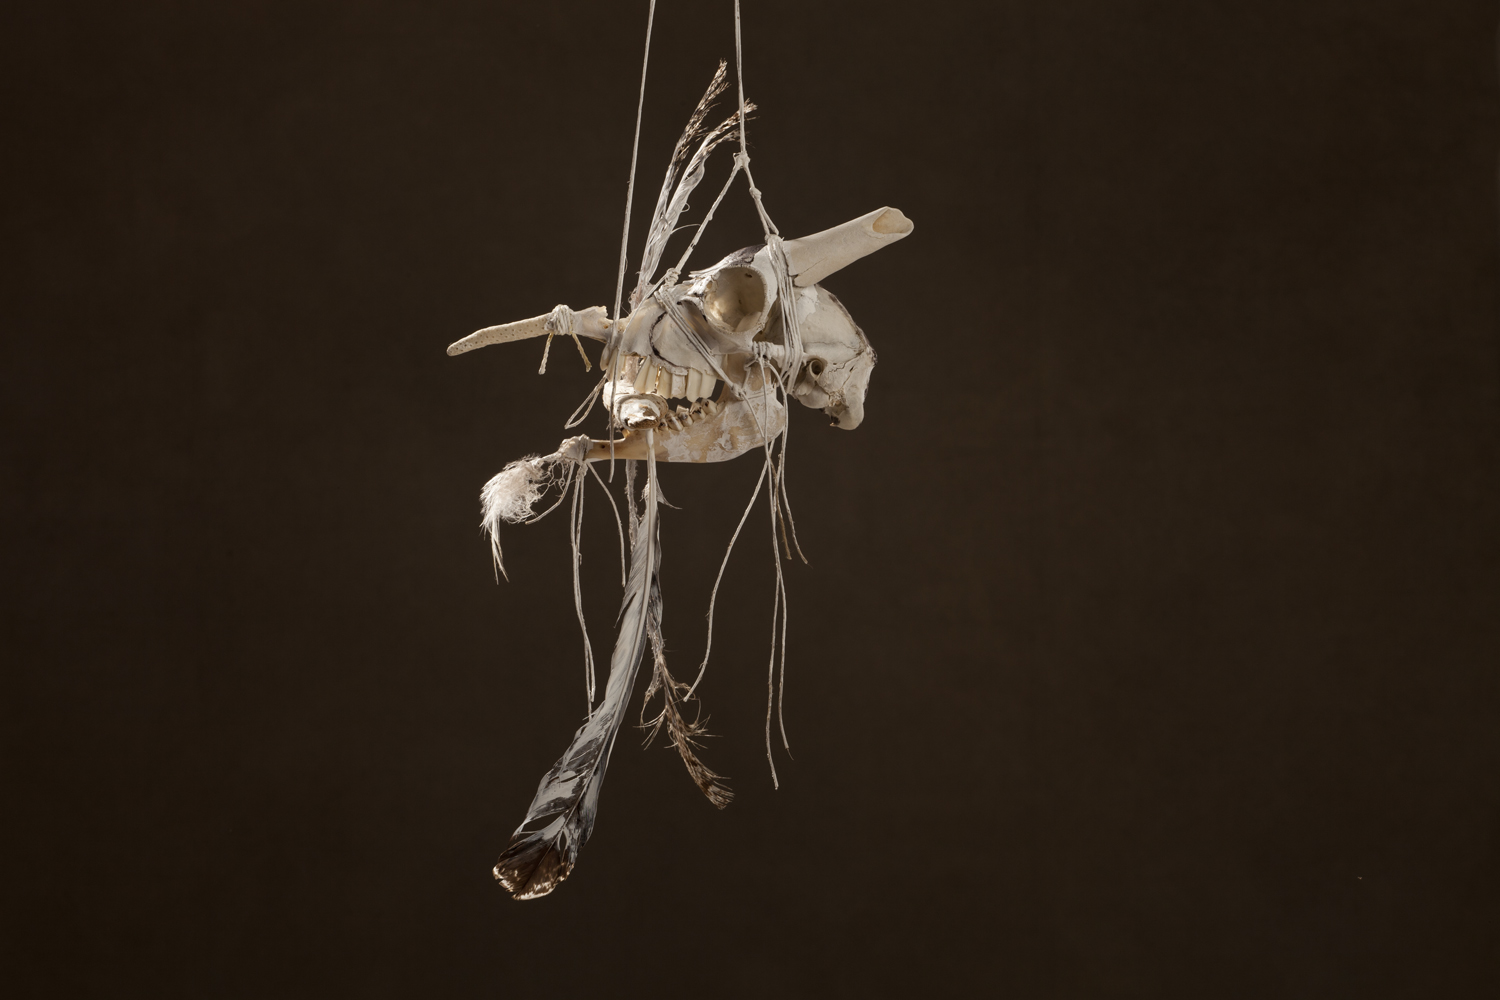 N49, 2011 44 x 30 x 85 cm / 13.3 x 11.8 x 33.5 inches Mixed Media / goat Skull